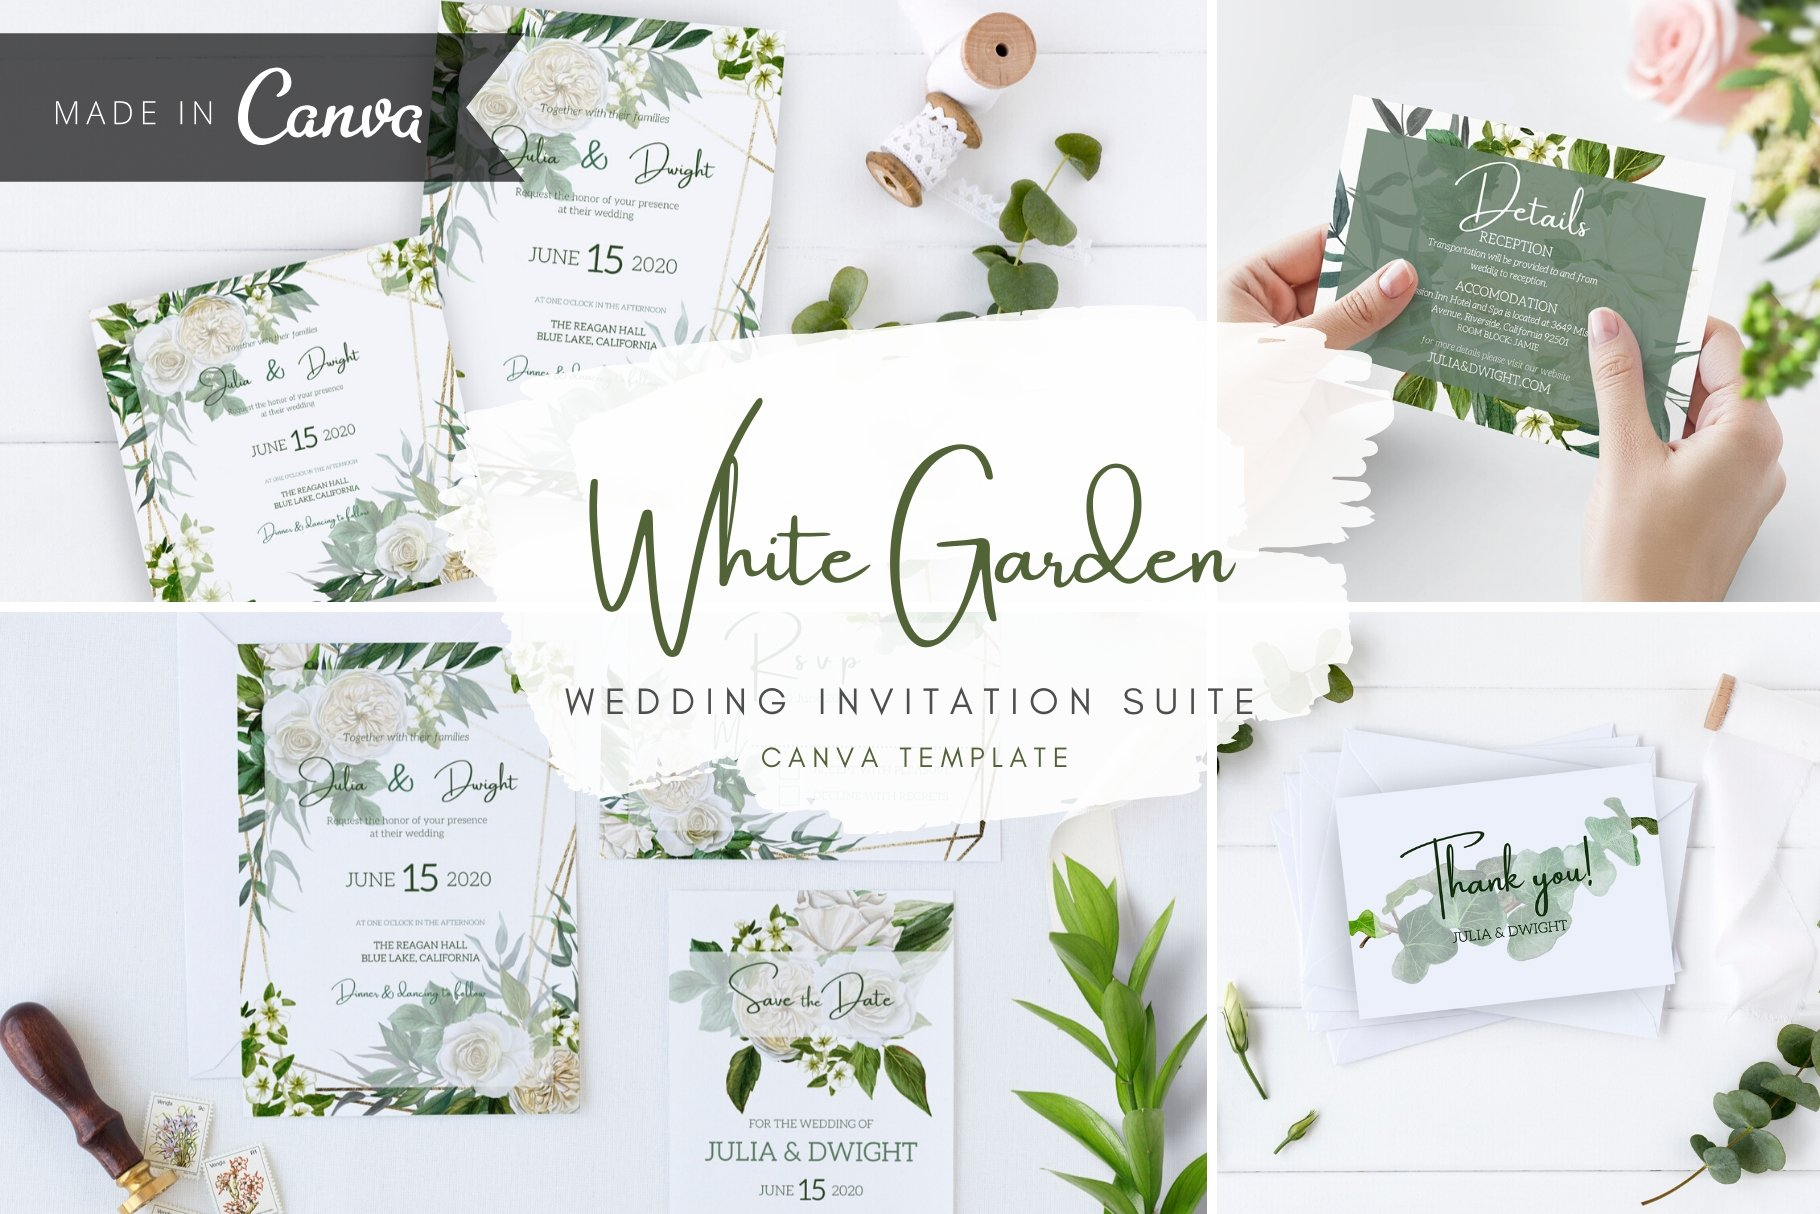 Wedding Watercolor Invitation, Canva  Creative Canva Templates